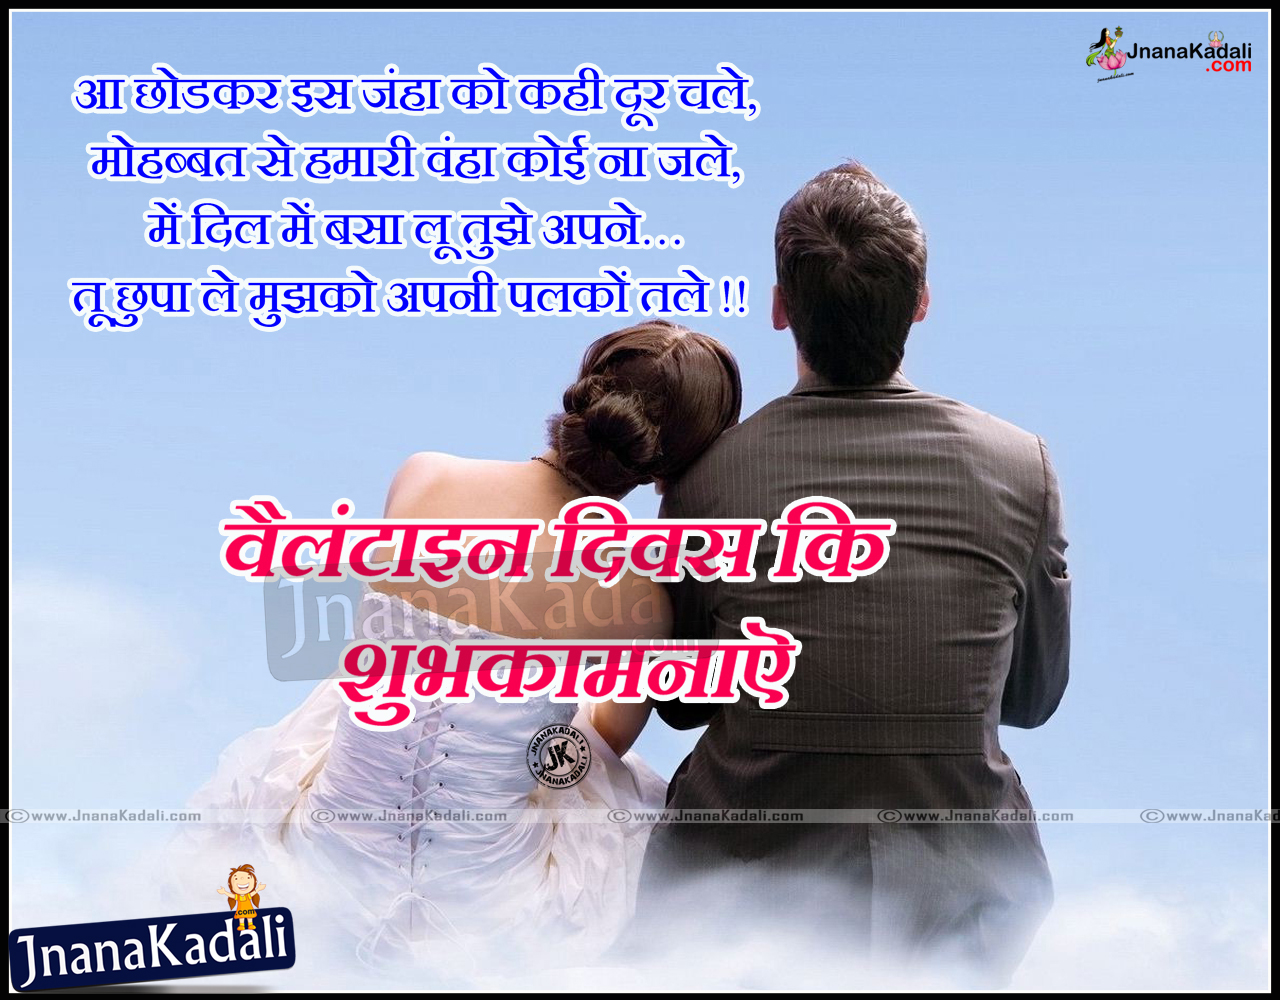 Love Shayri Wallpaper For Husband : True Love Shayari and Valentines Day Hindi Messages with hd wallpapers JNANA KADALI.cOM ...